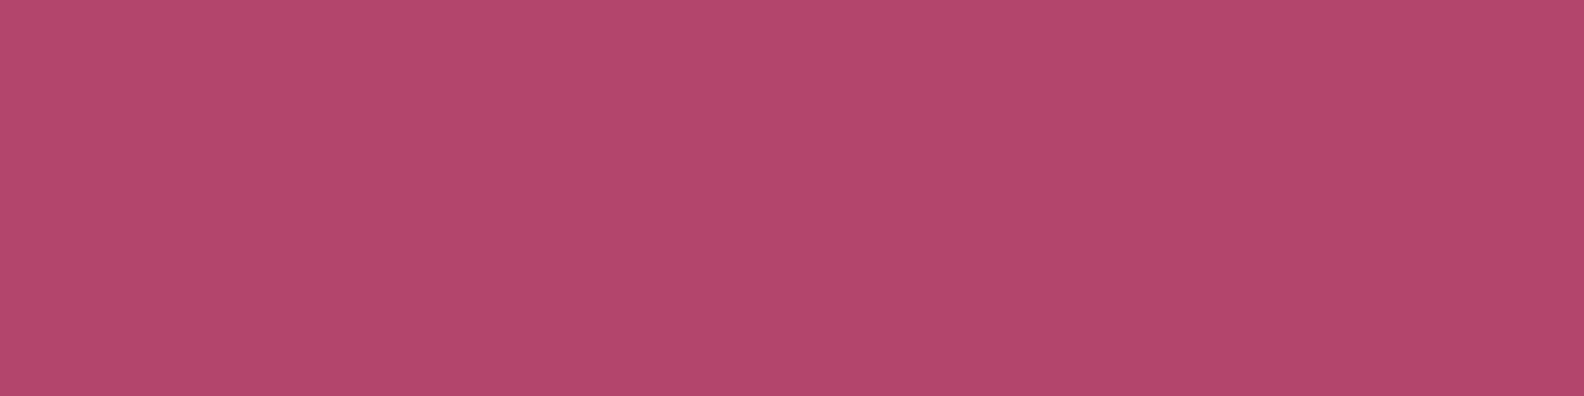 1584x396 Raspberry Rose Solid Color Background